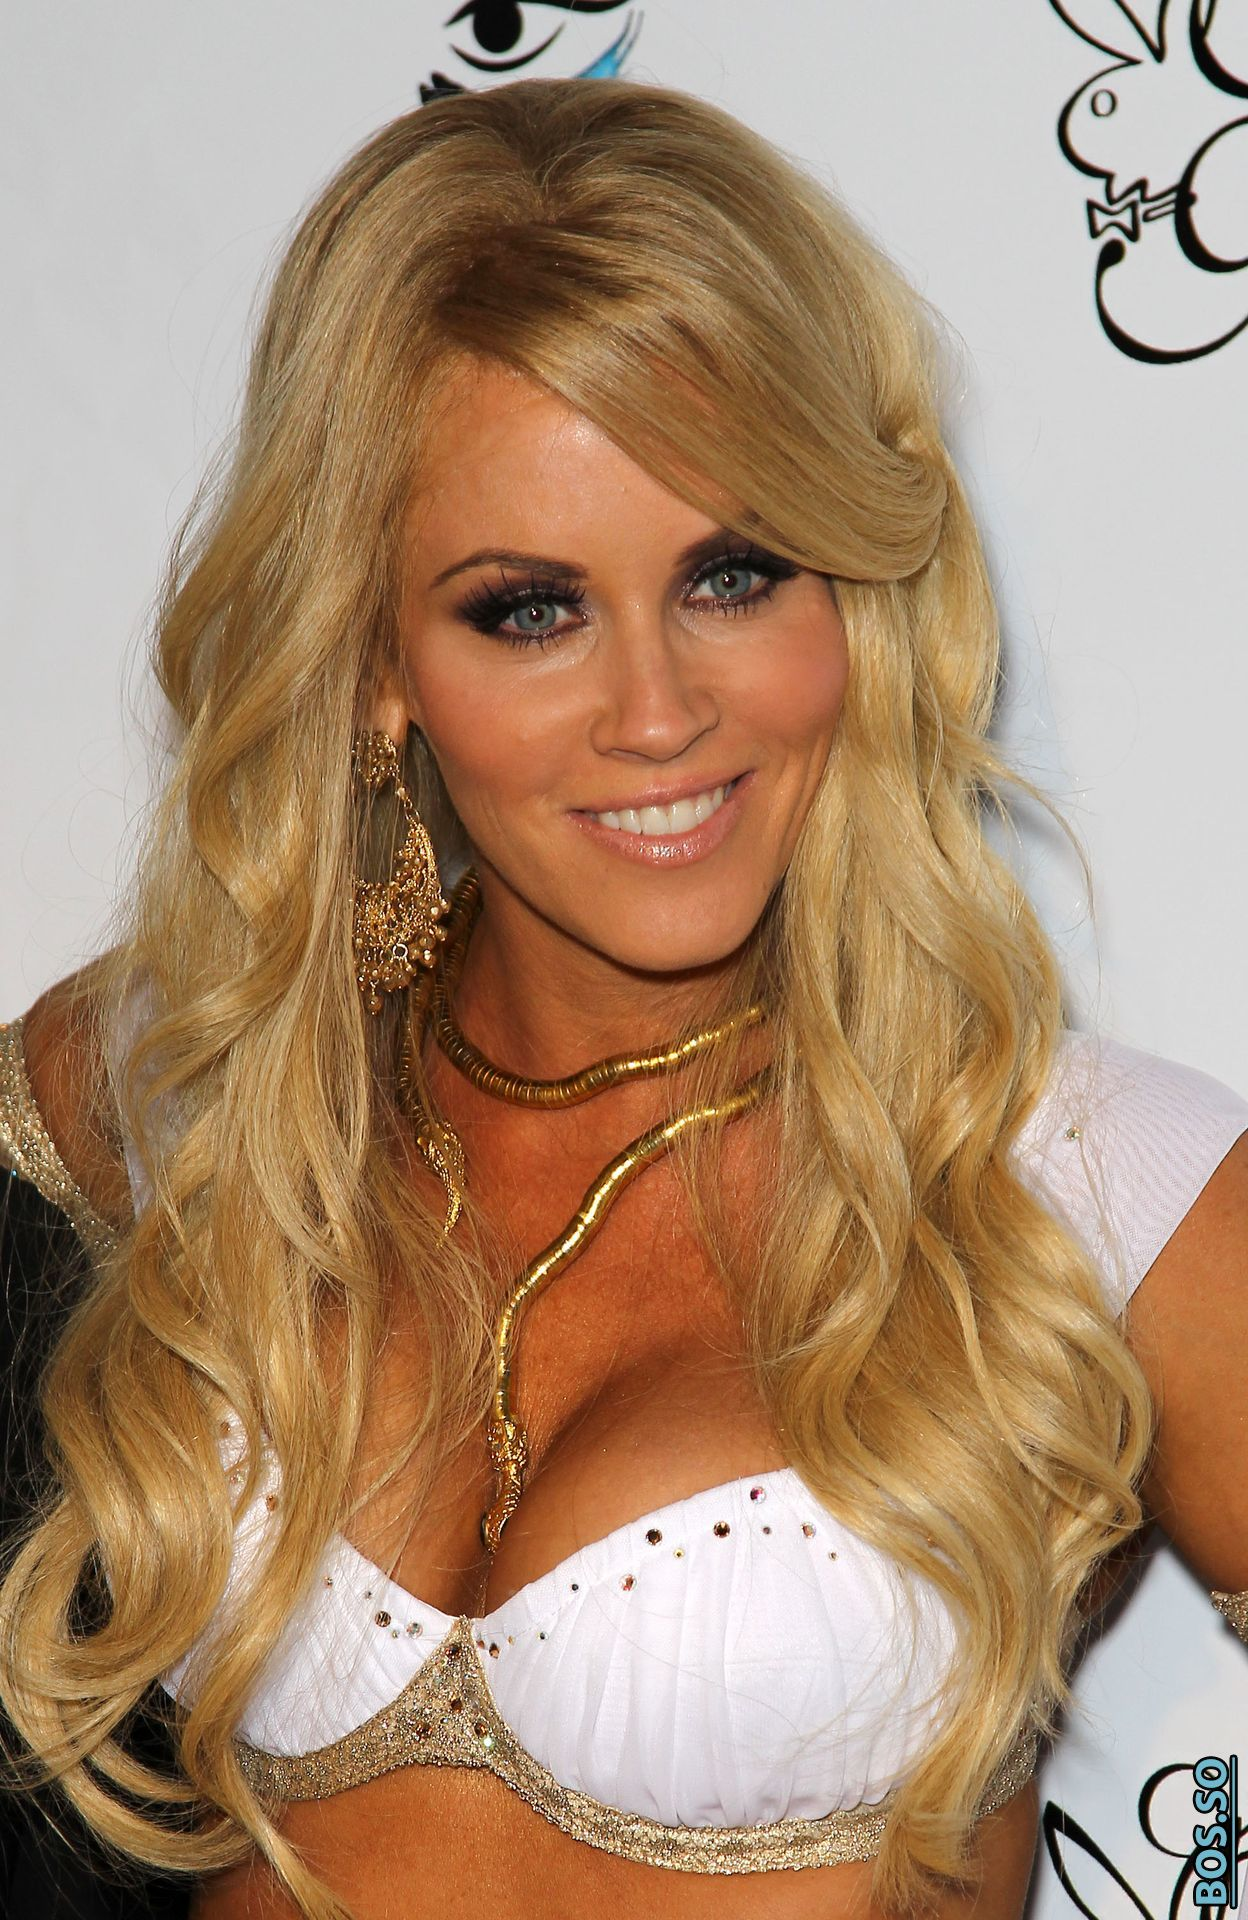 Jenny McCarthy Nude The Fappening - Page 5 - FappeningGram